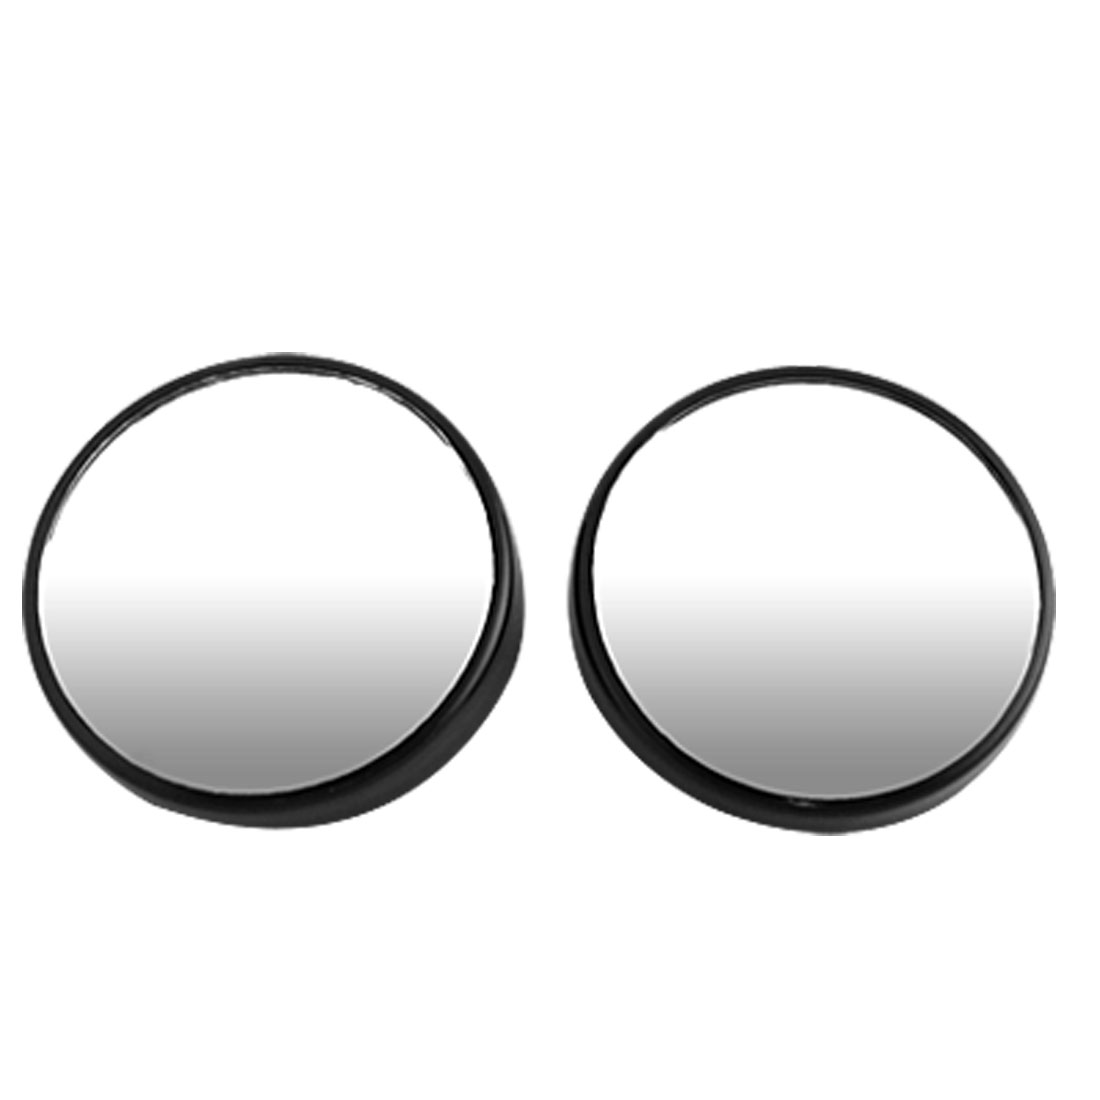 2 Pieces 50mm Diameter Black Car Convex Rearview Blind Spot Mirror